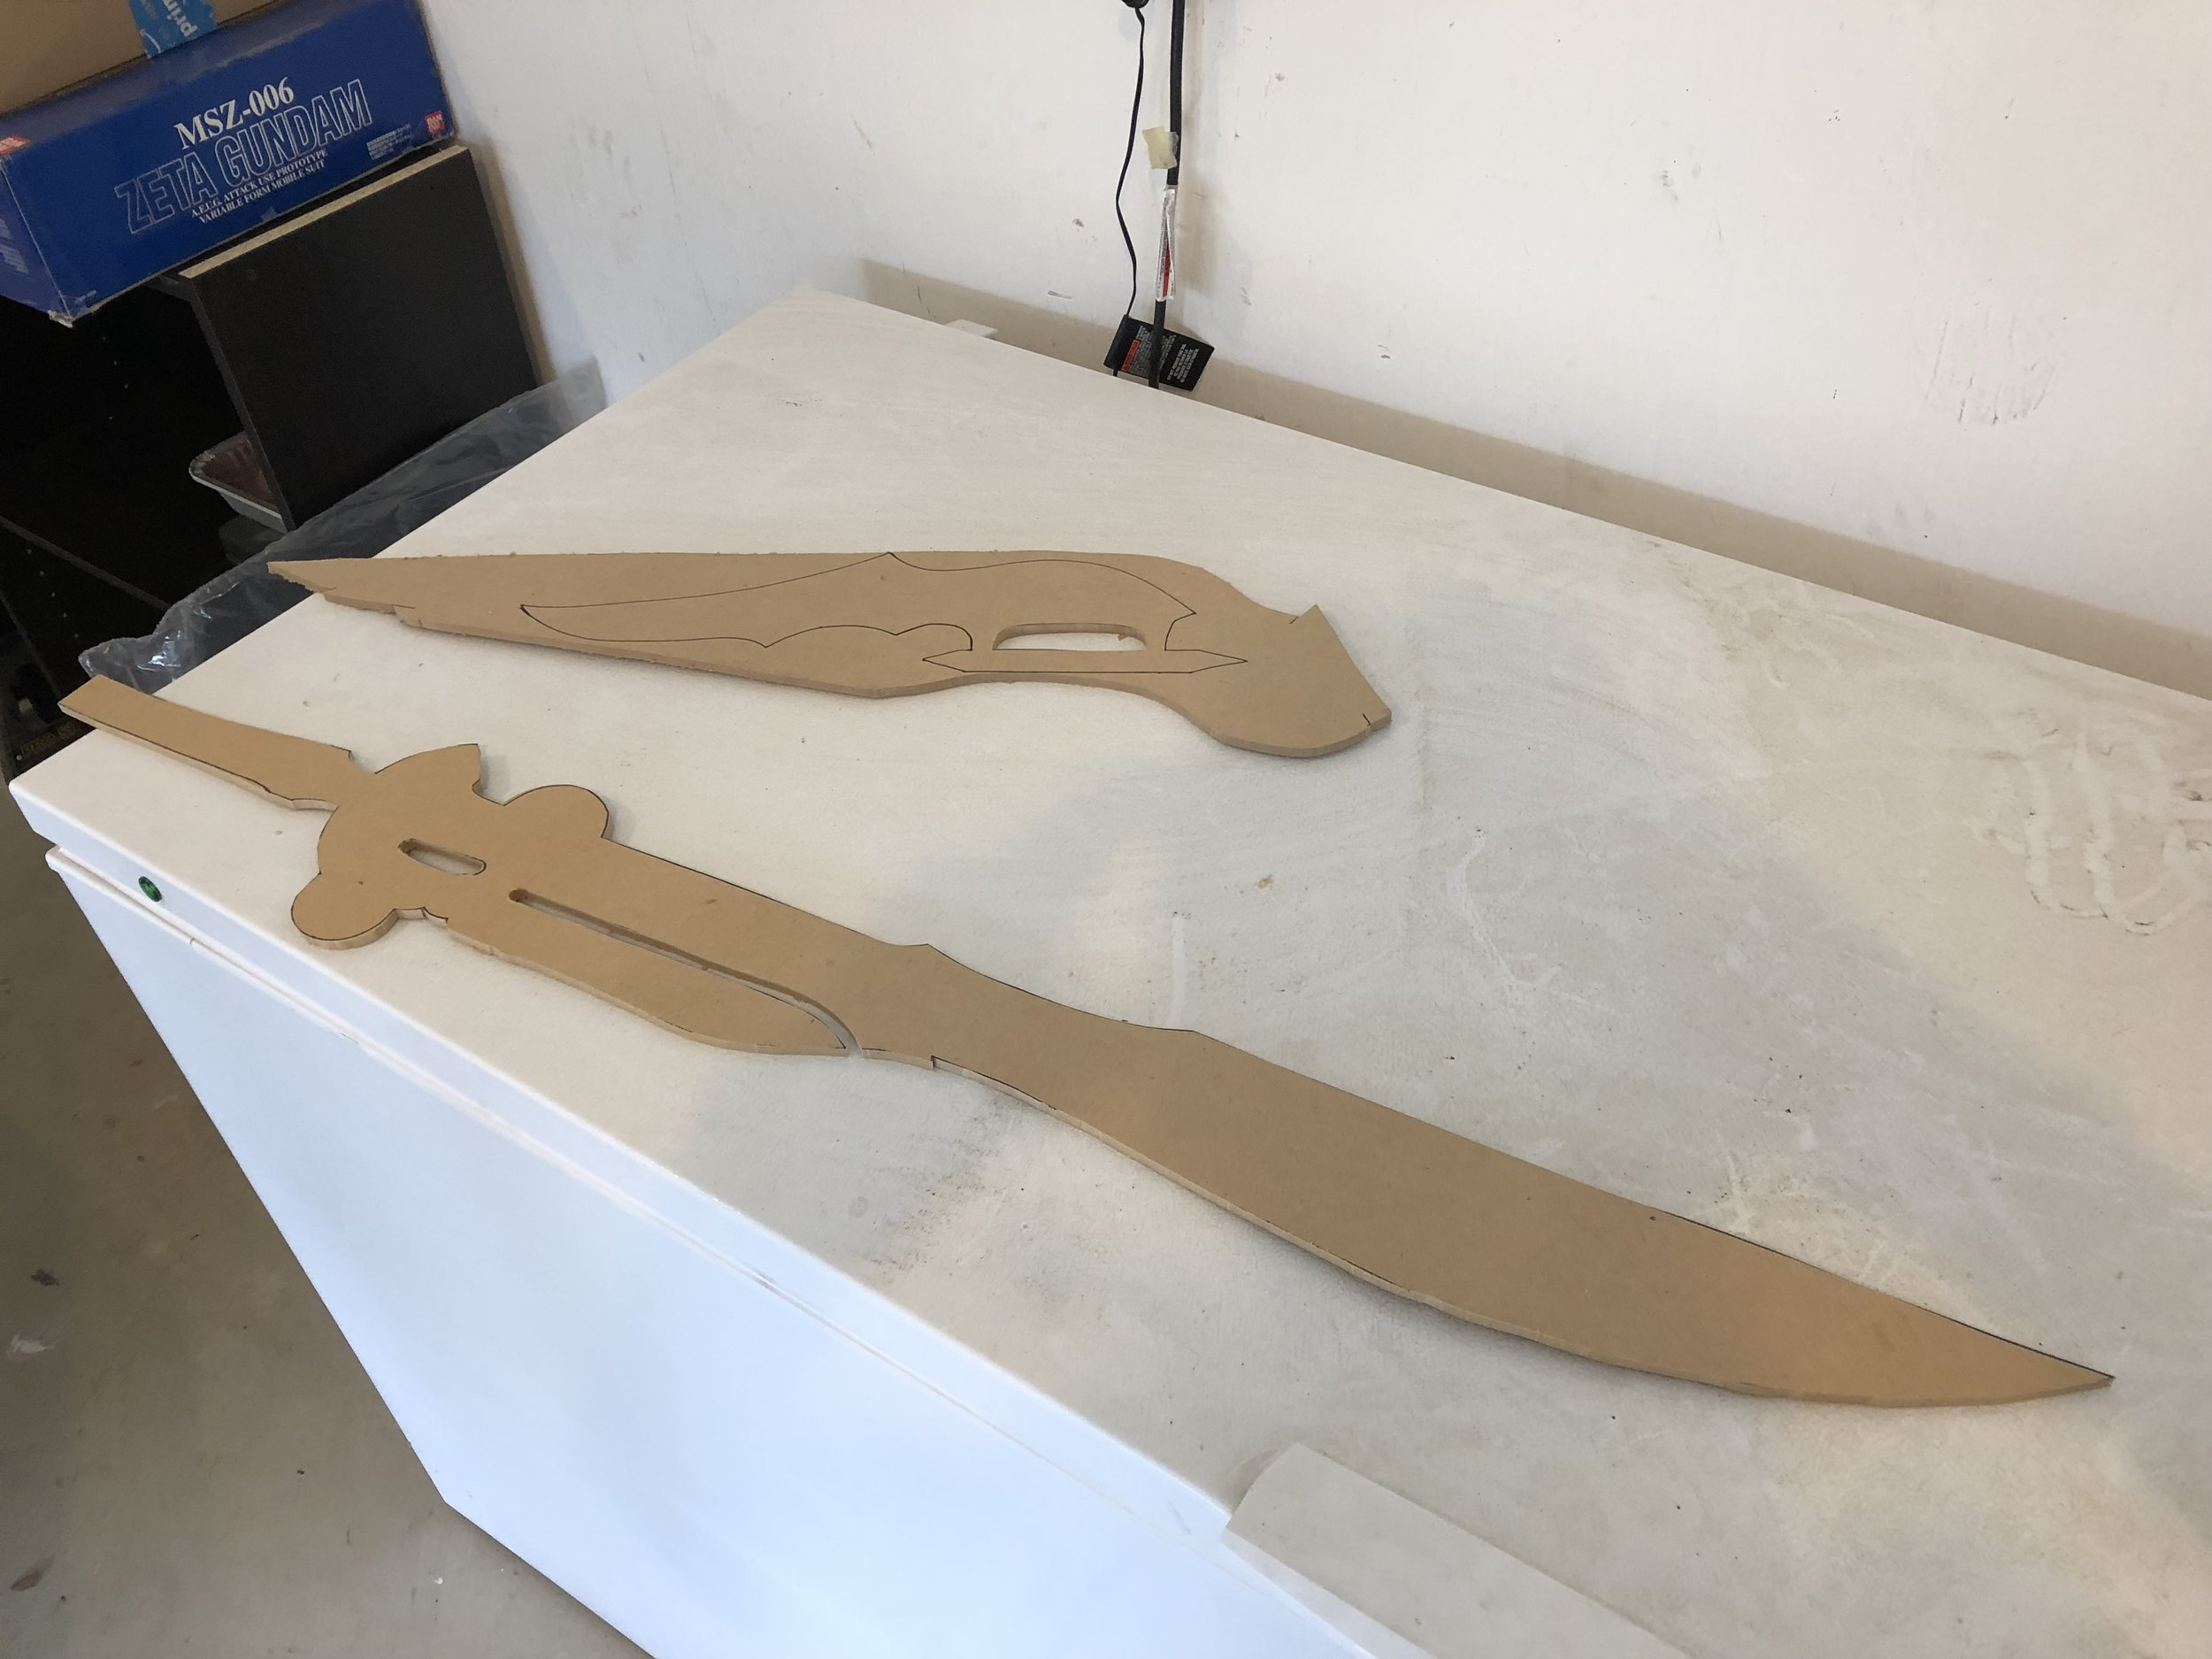 The base of both blades are MDF, and there are some wood elements for each one as well. I used a dowel that I split up the middle for the knife handle so that it would be round, and I used thin plywood pieces for details on the sword, to help with stability.